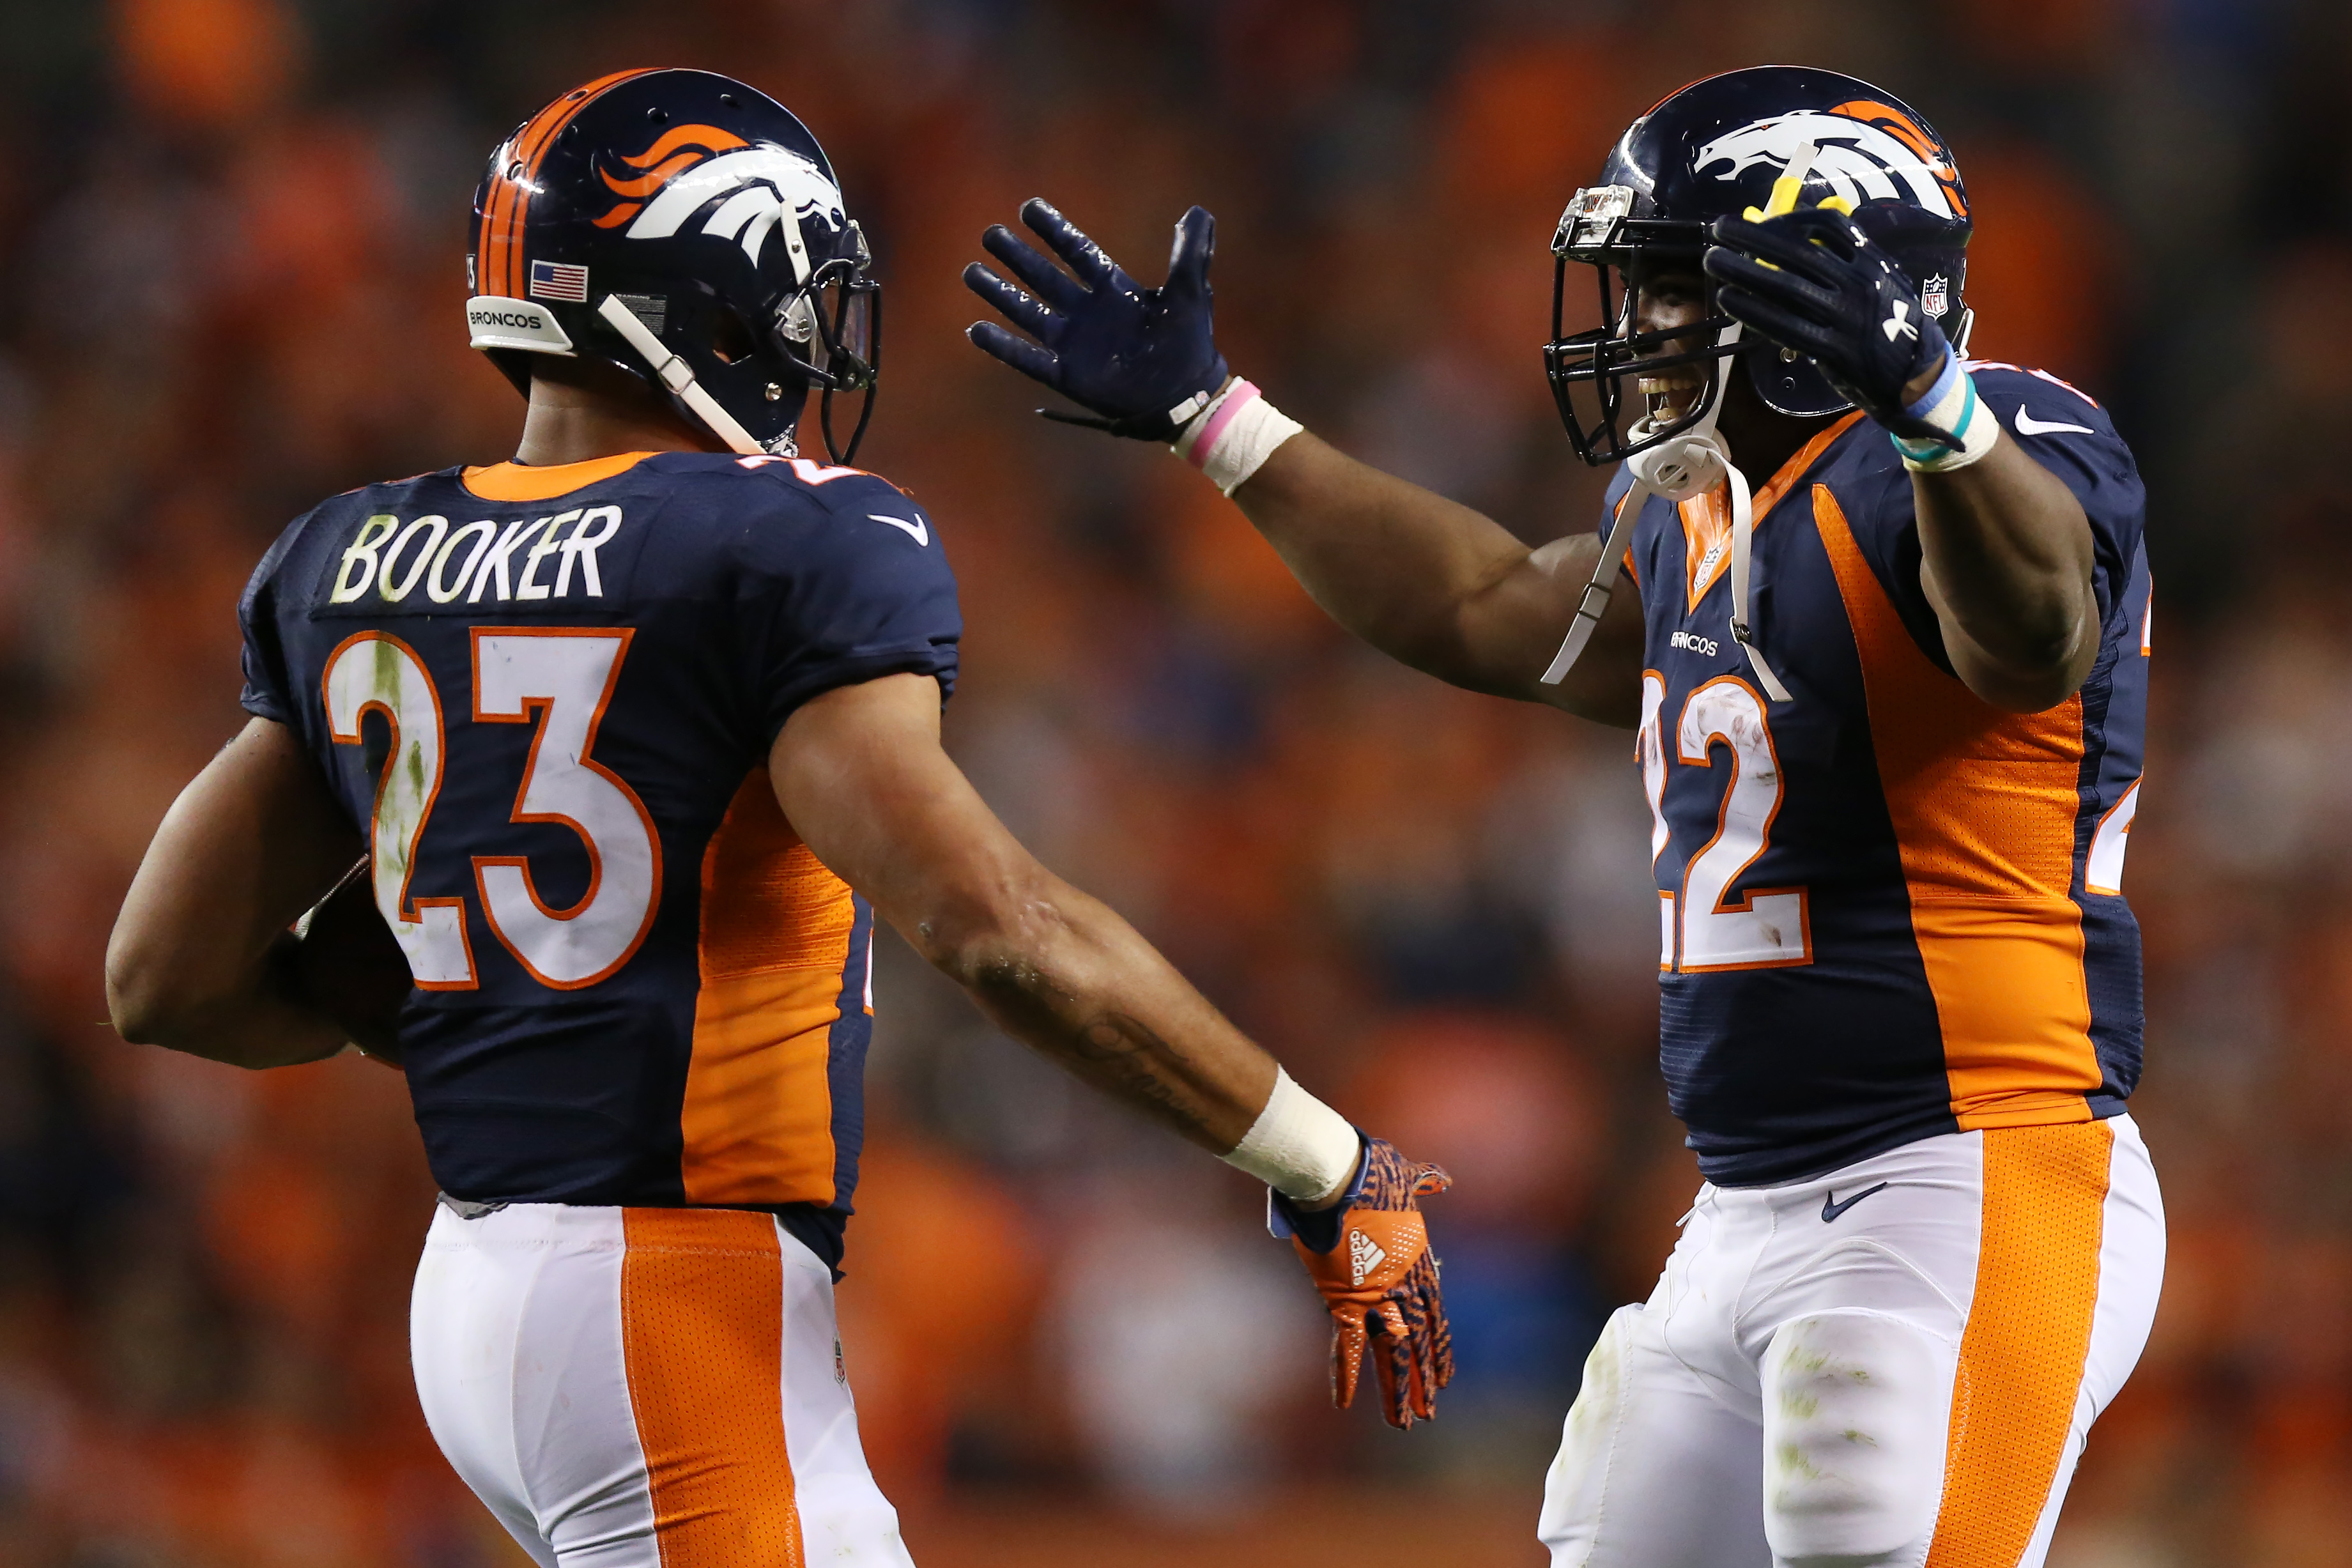 Running back Devontae Booker #23 and running back C.J. Anderson #22 of the Denver Broncos celebrate a score in the second half of the game against the Houston Texans on October 24, 2016 in Denver. (Photo by Justin Edmonds/Getty Images)